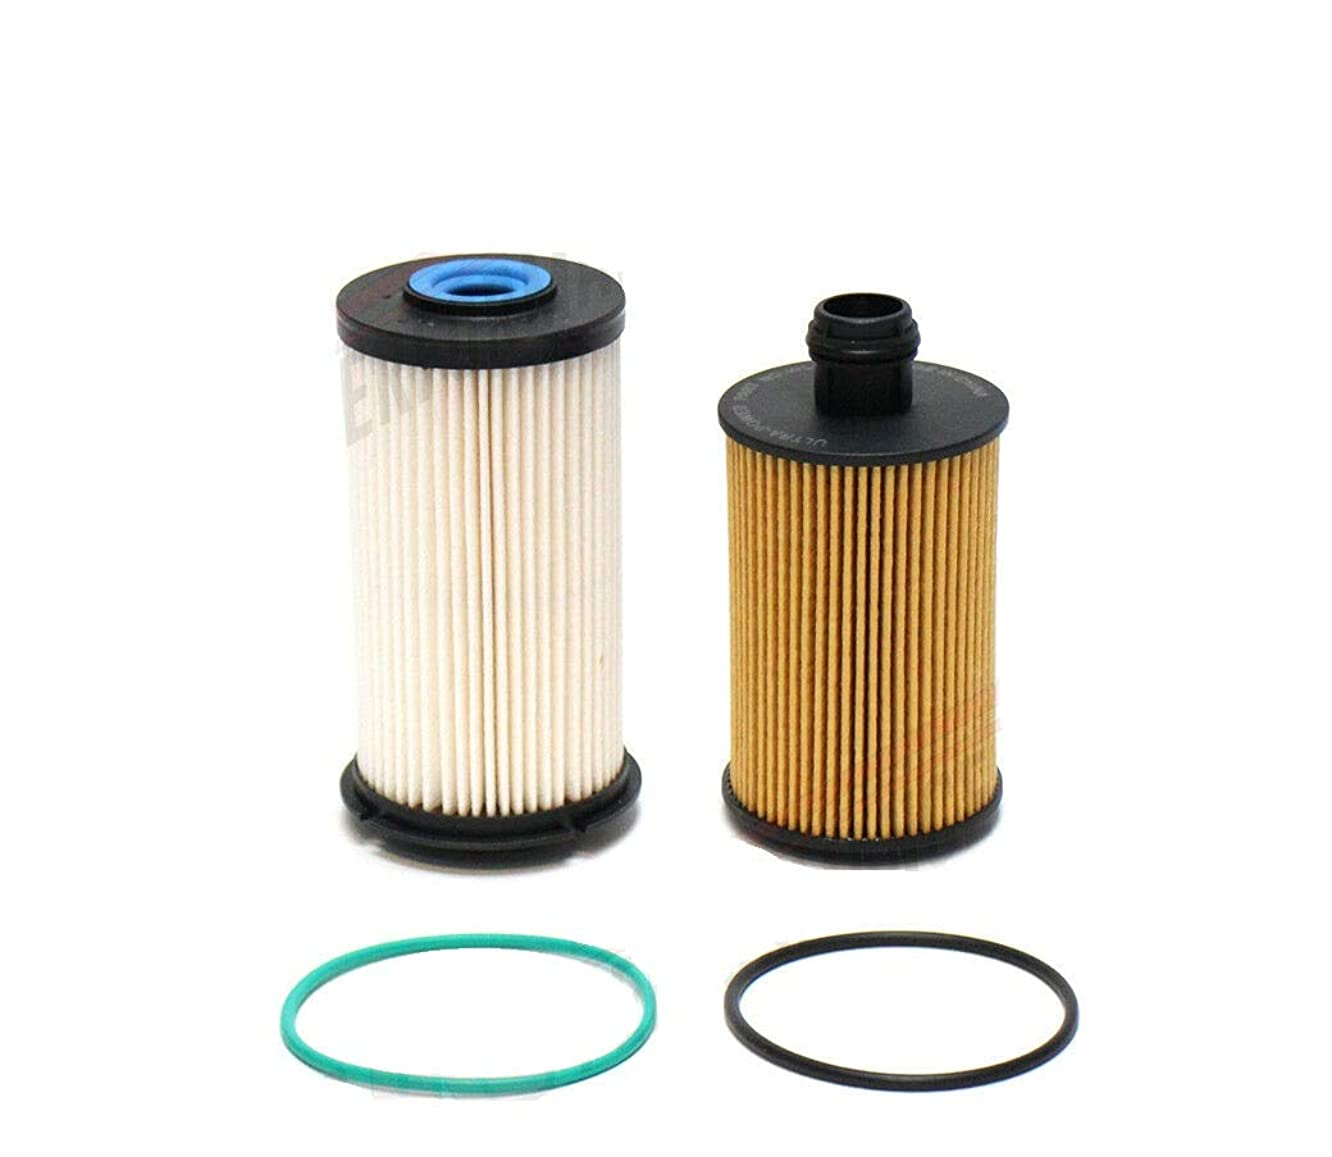 14-18 Dodge Ram 3.0 3.0L V6 EcoDiesel OE Replacement Oil & Fuel Filter Combo Kit